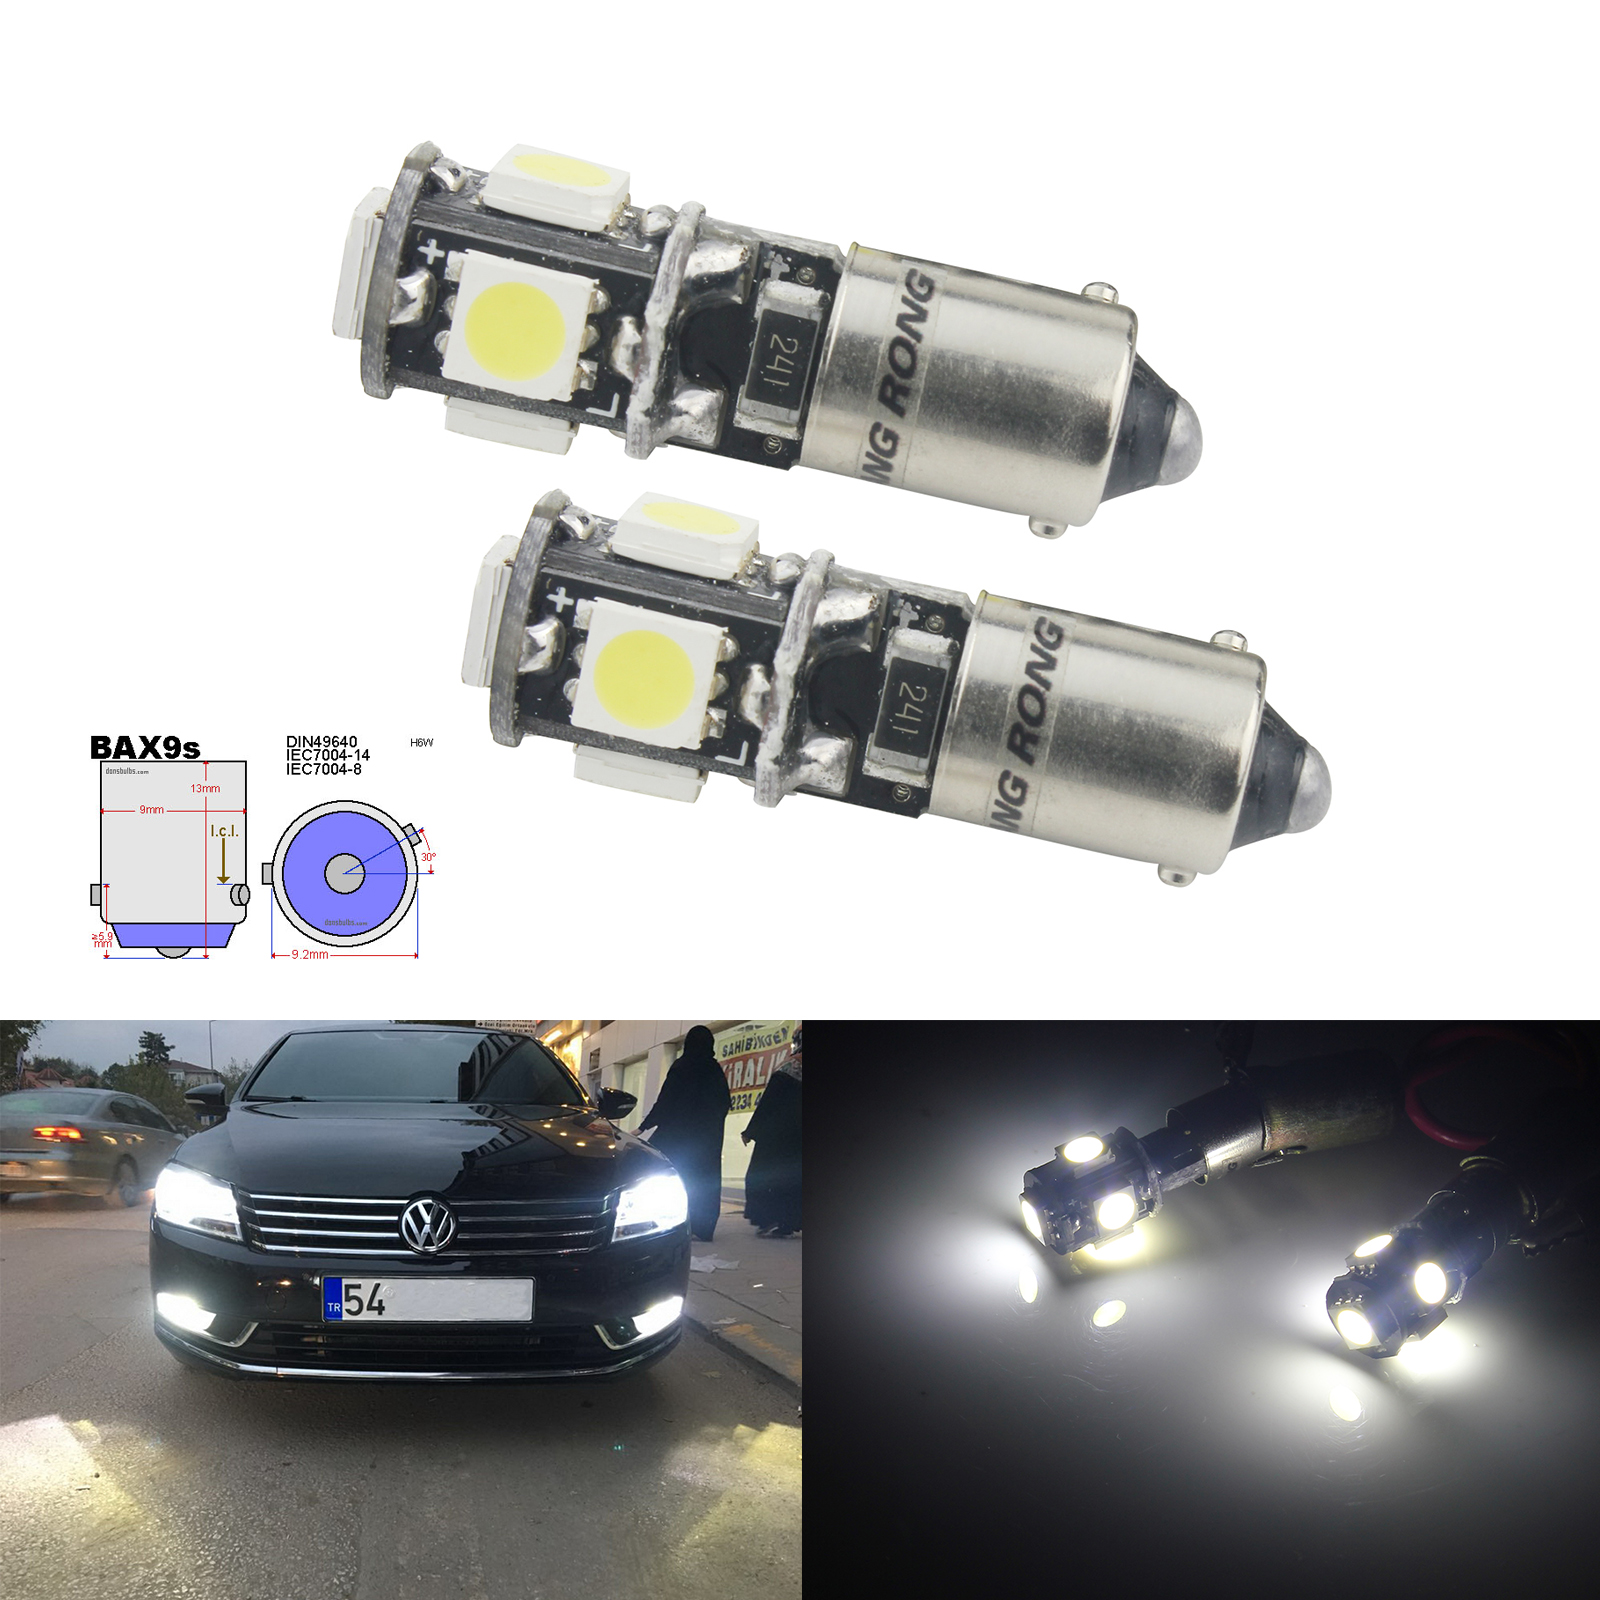 2 x CAR SMD LED WHITE BULBS SIDELIGHT XENON CANBUS FITS MOST CARS  GIFT